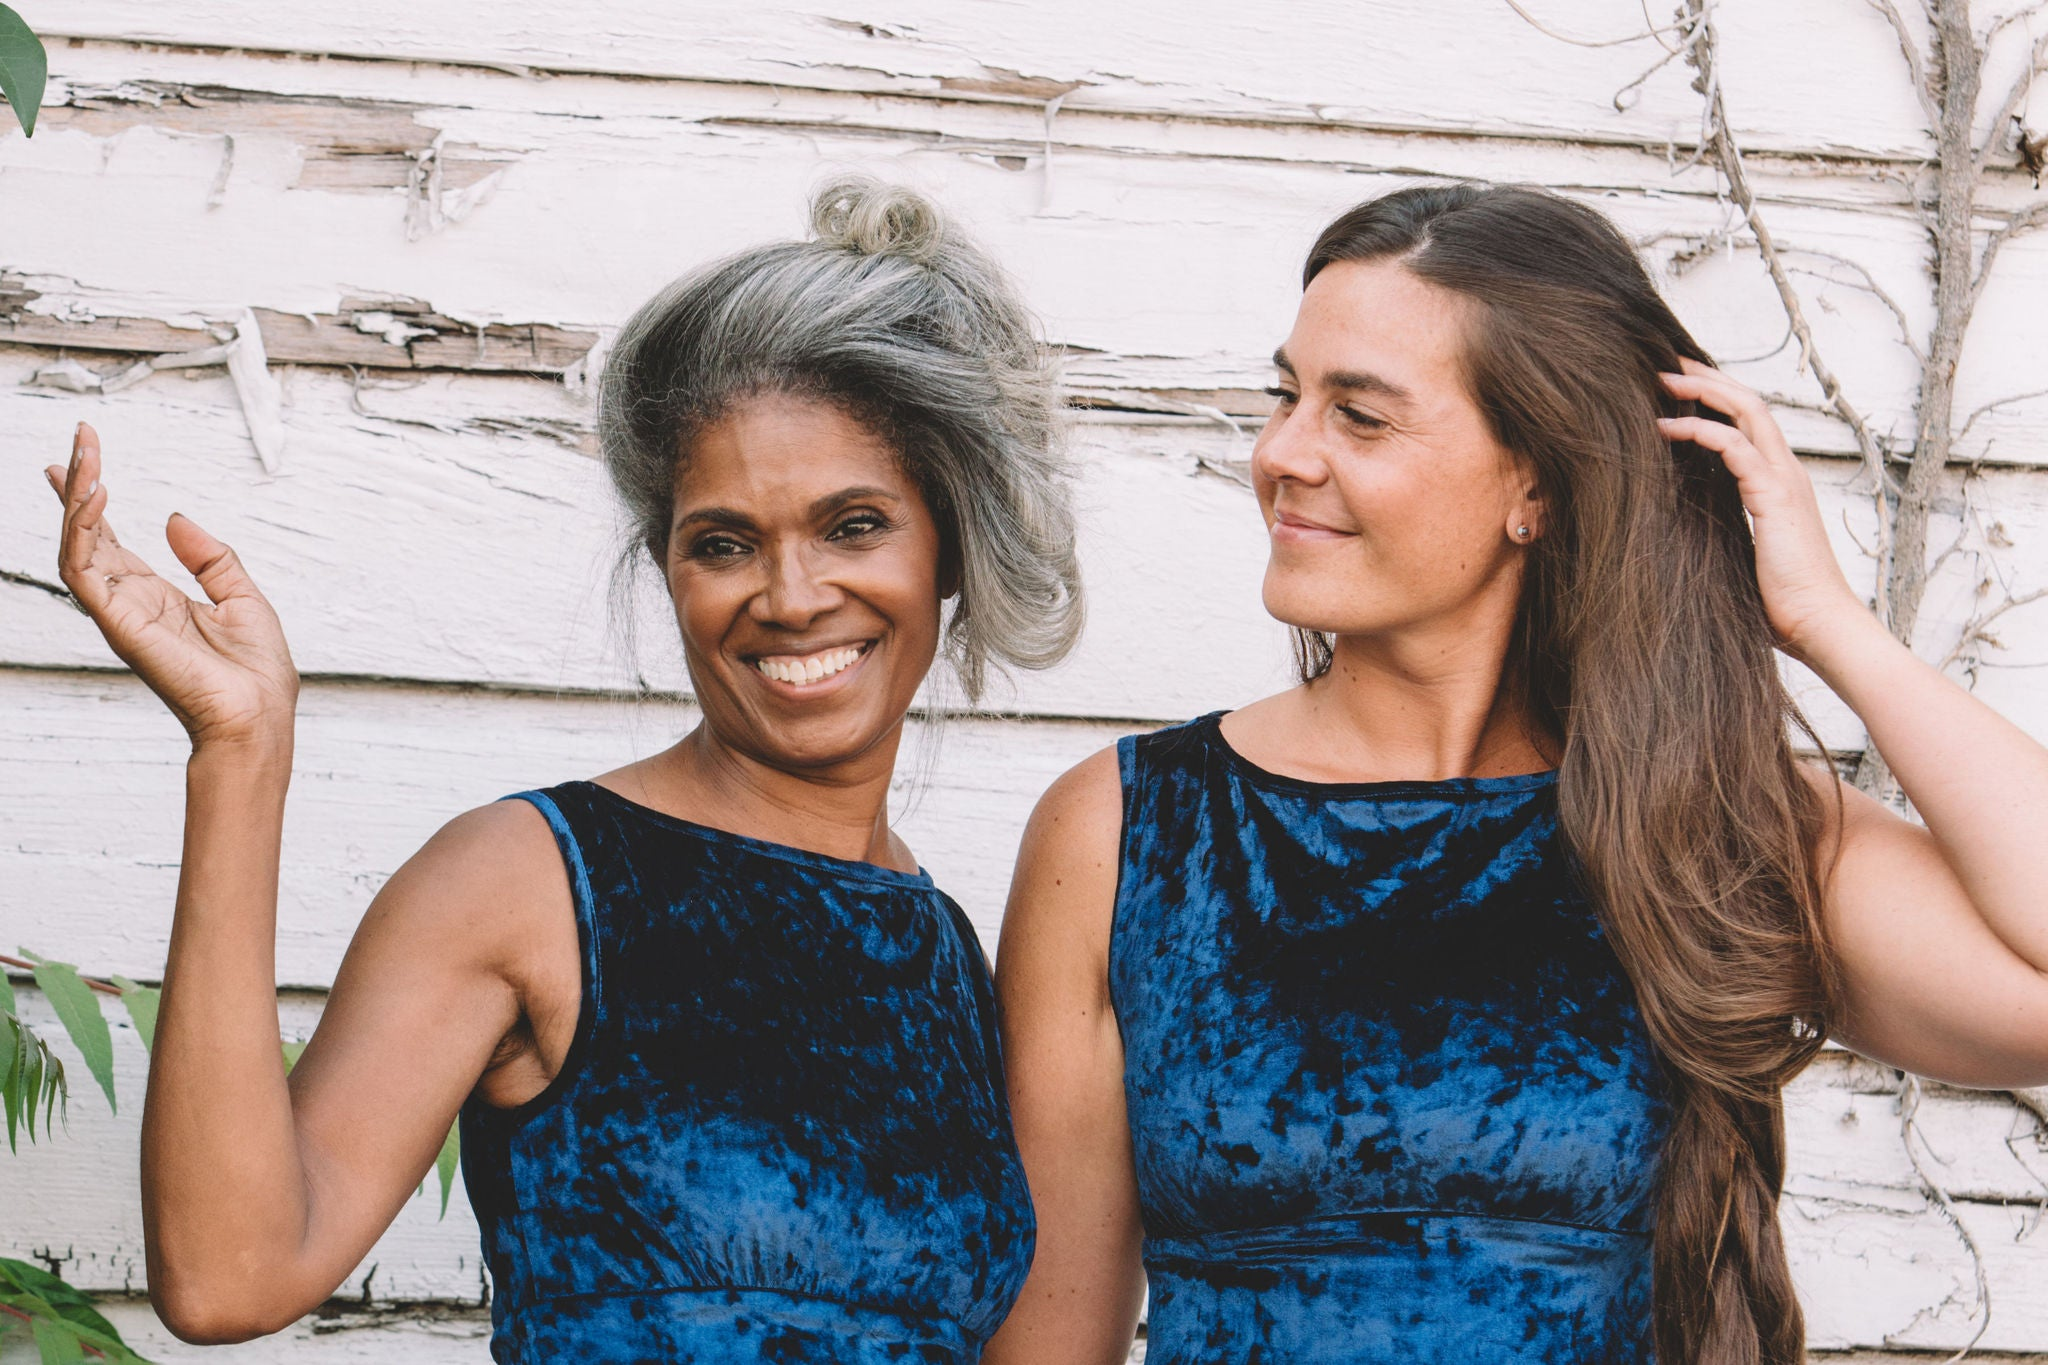 Blue velvet dress worn by a older black woman and a younger white woman